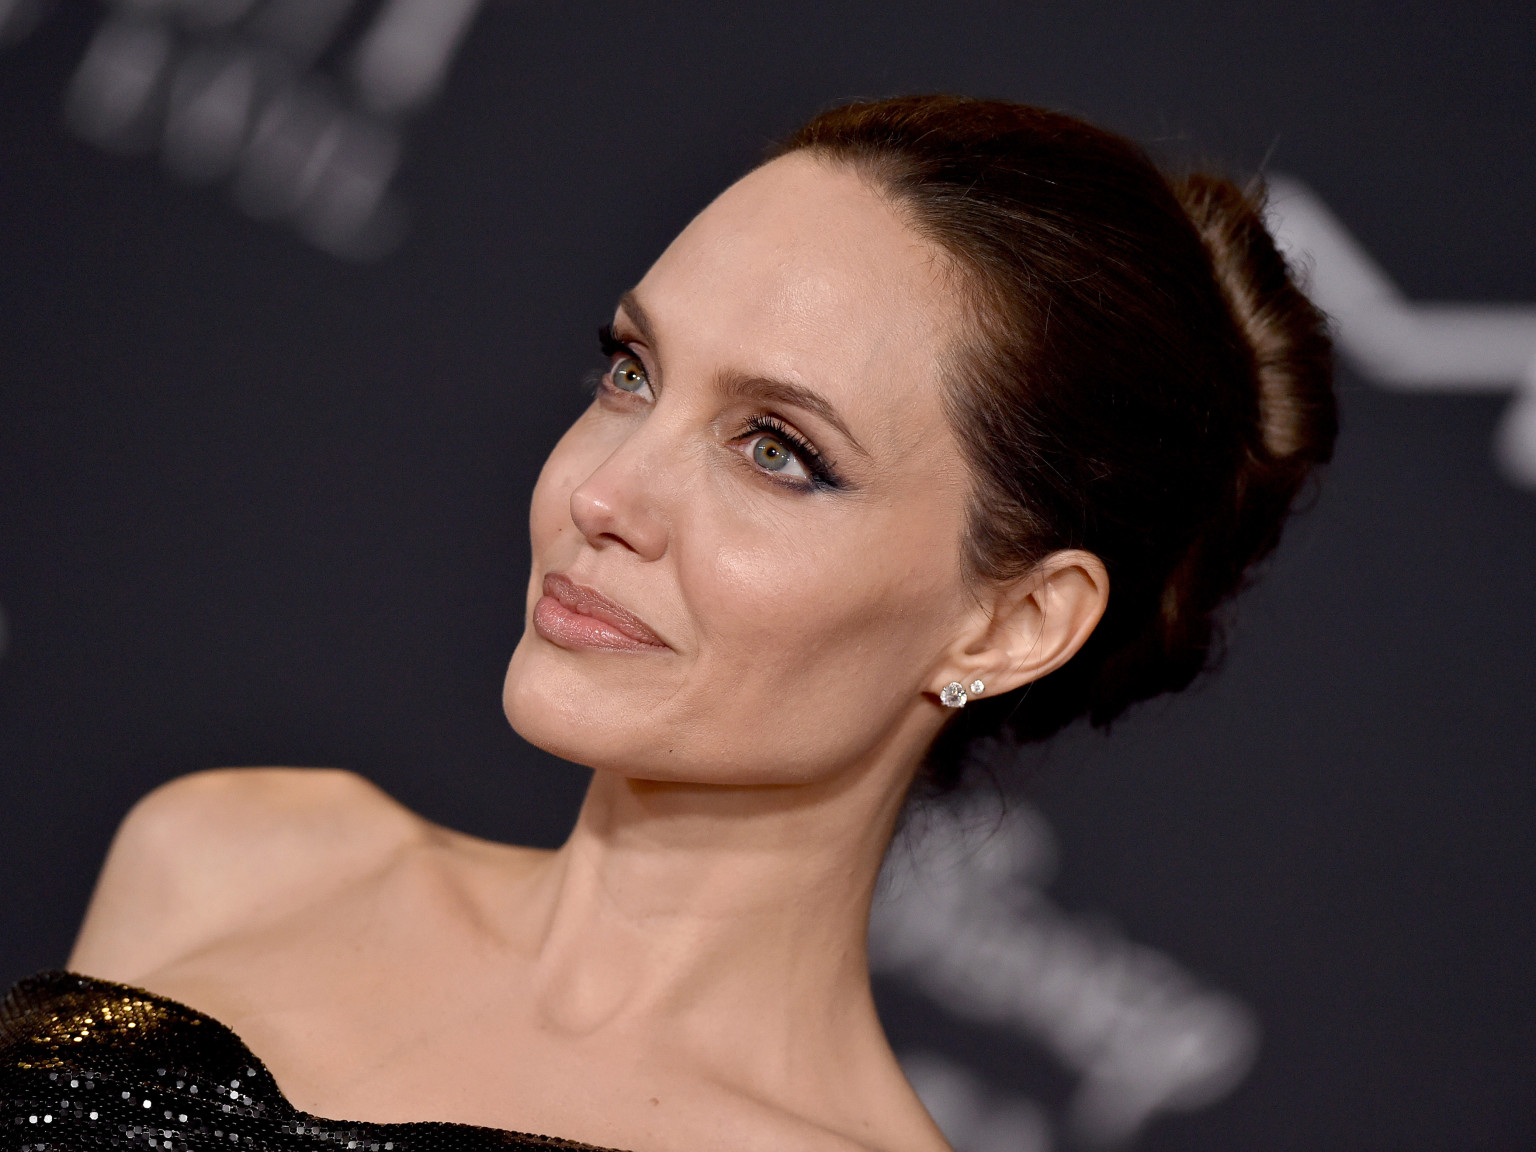 angelina-jolie-has-some-great-advice-for-victims-of-domestic-abuse-stuck-with-their-abusers-during-the-holidays